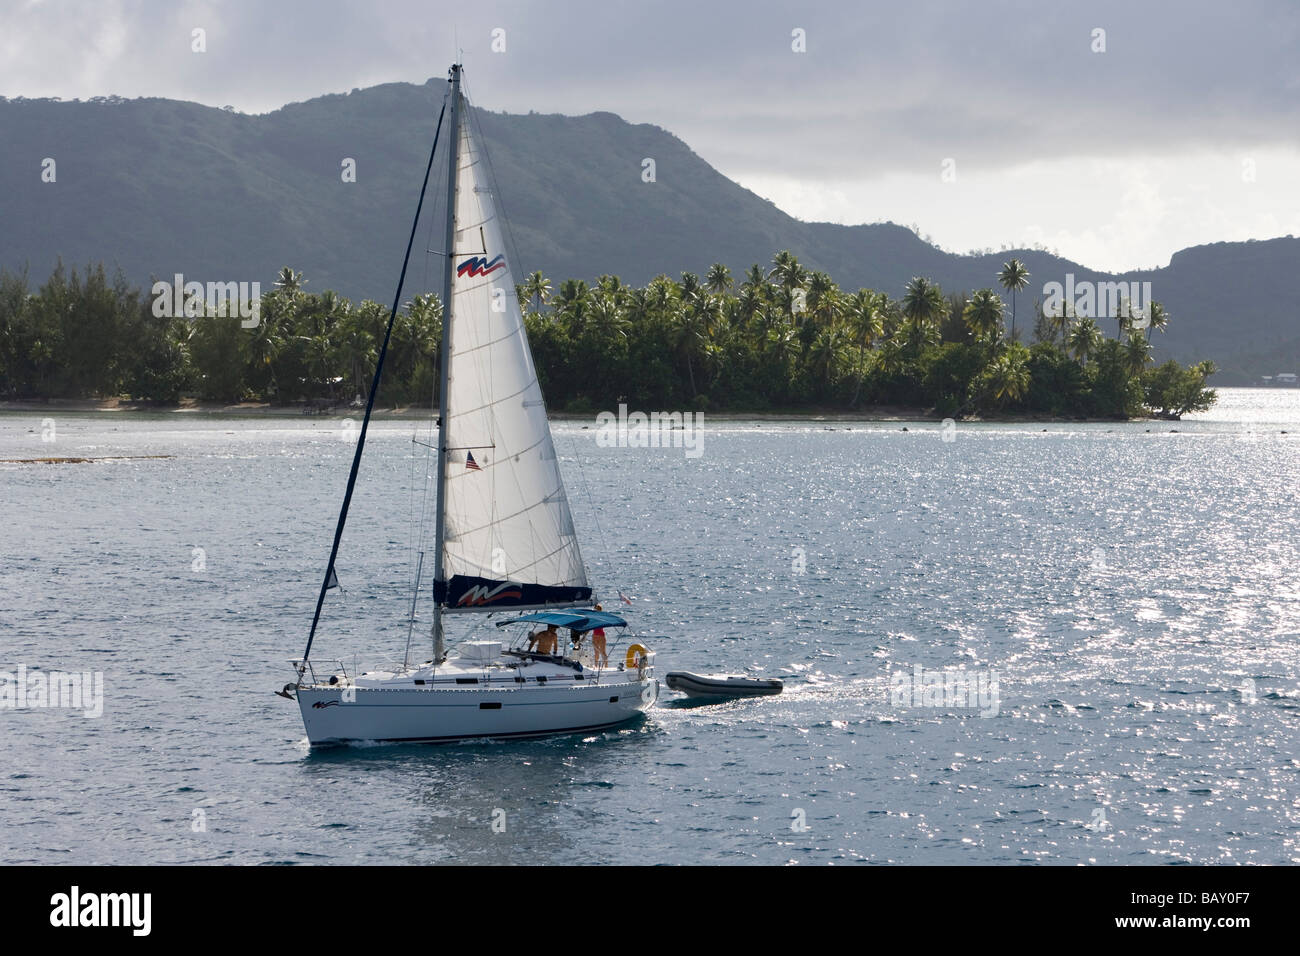 Moorings Charter Yacht Sailboat in Bora Bora Lagoon, Bora Bora, Society Islands, French Polynesia - Stock Image